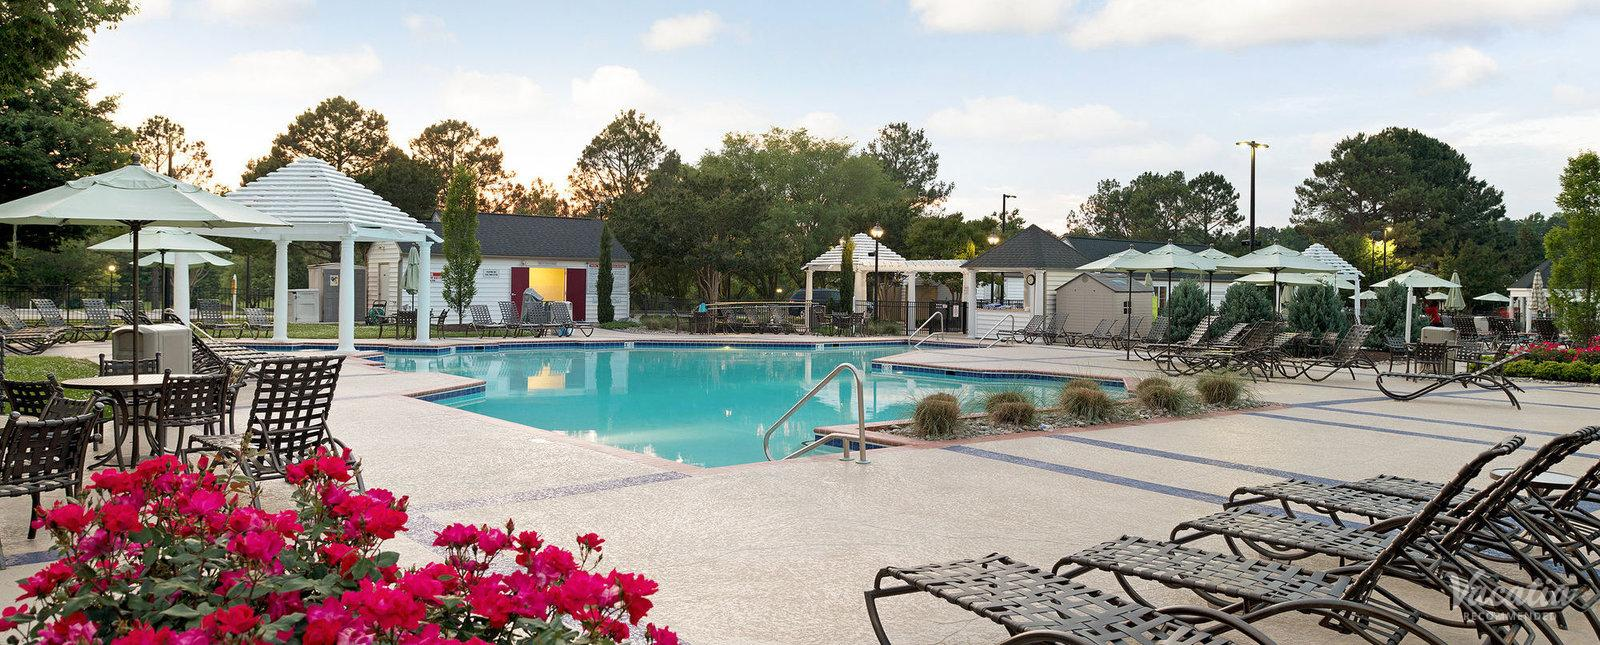 The Historic Powhatan Resort Pool